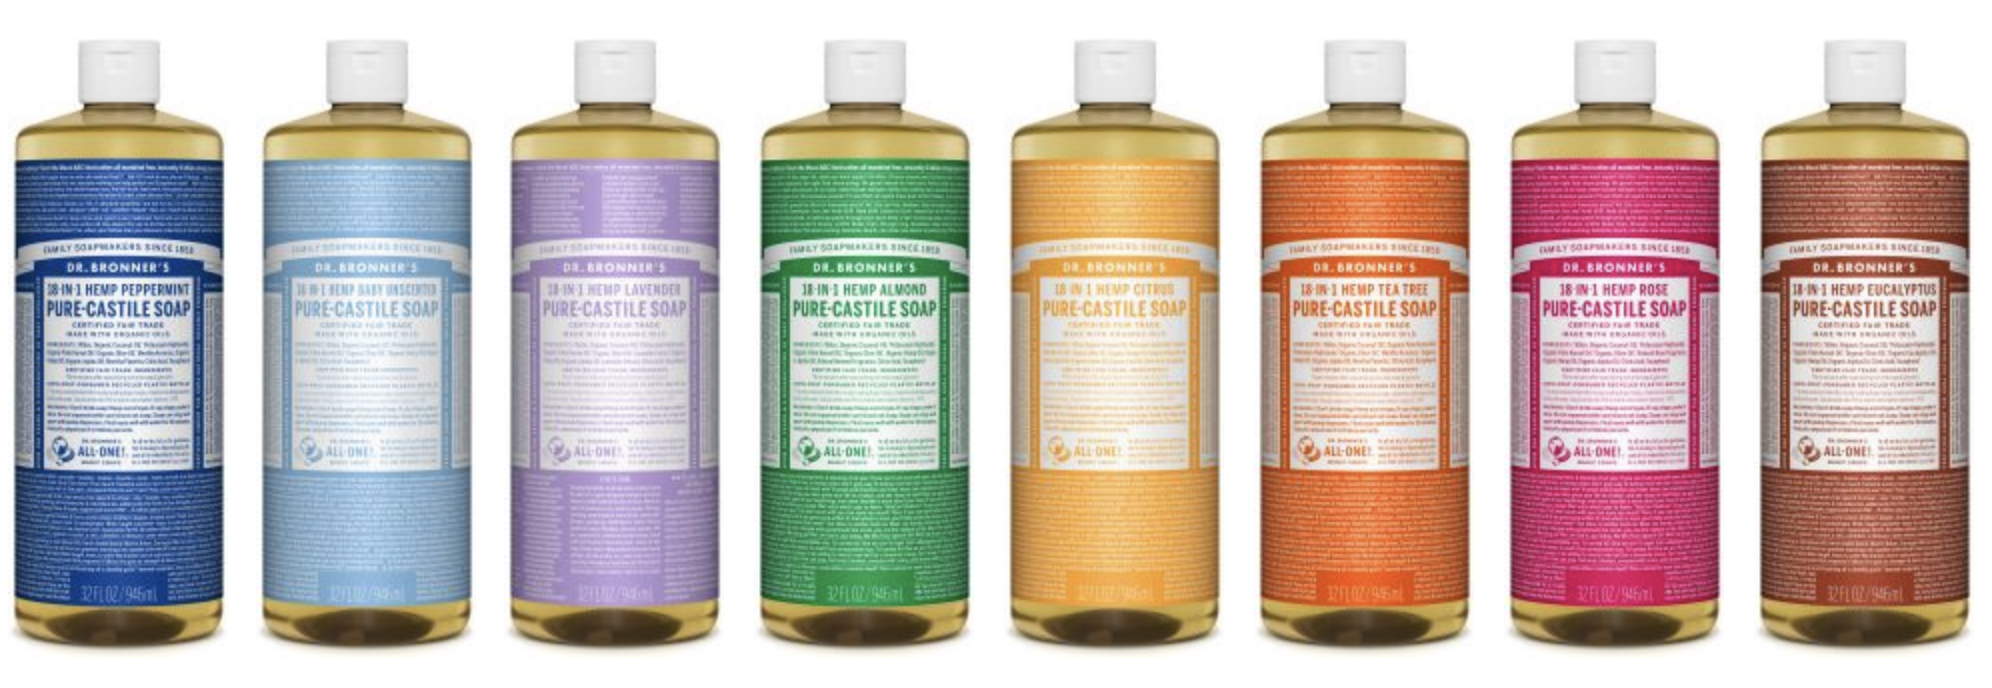 Dr. Bronners is a great natural shampoo option